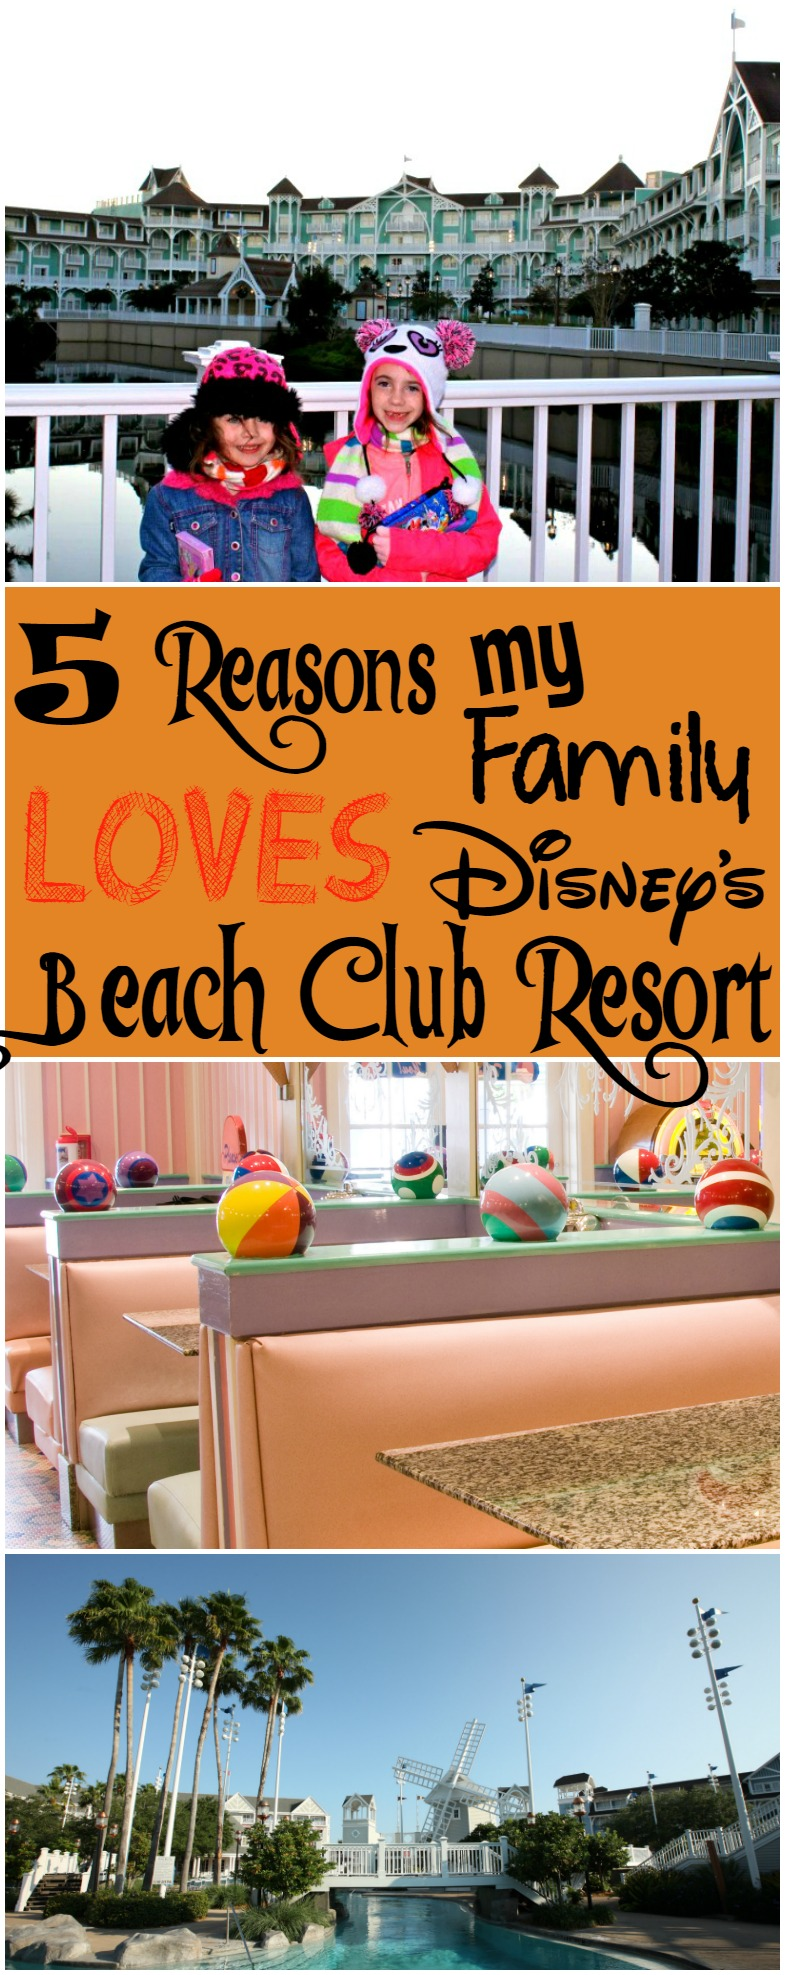 5 Reasons My Family Loves Disney's Beach Club Resort